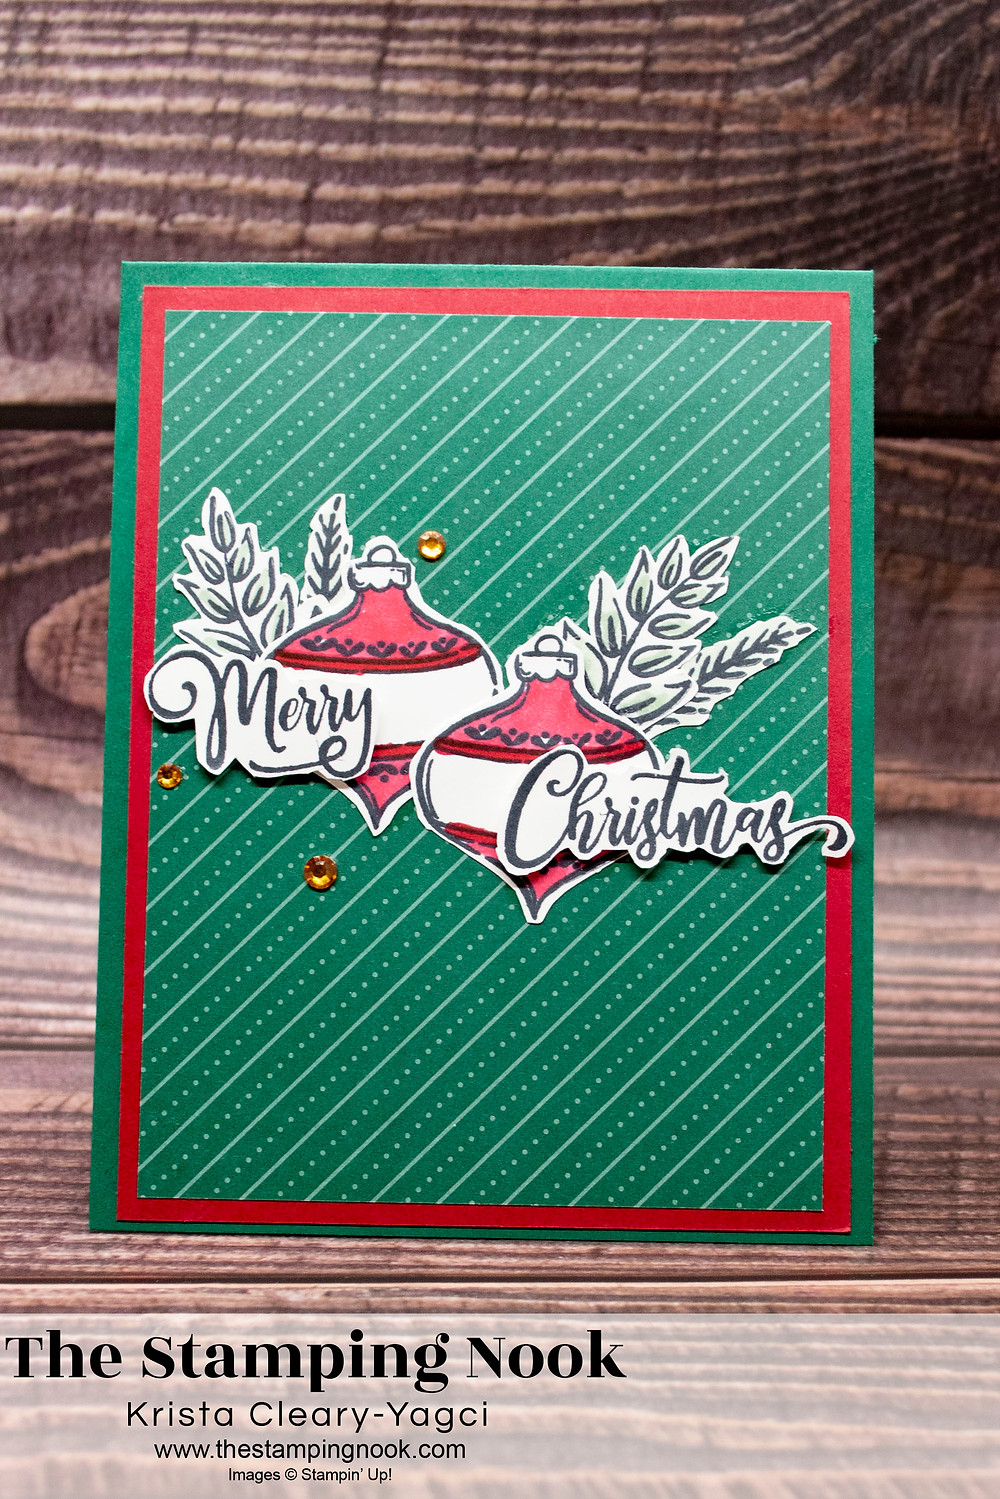 stampin-up-Tag-Buffet-Merry-Christmas-Card-Krista-Cleary-Yagci-The-Stamping-Nook-4